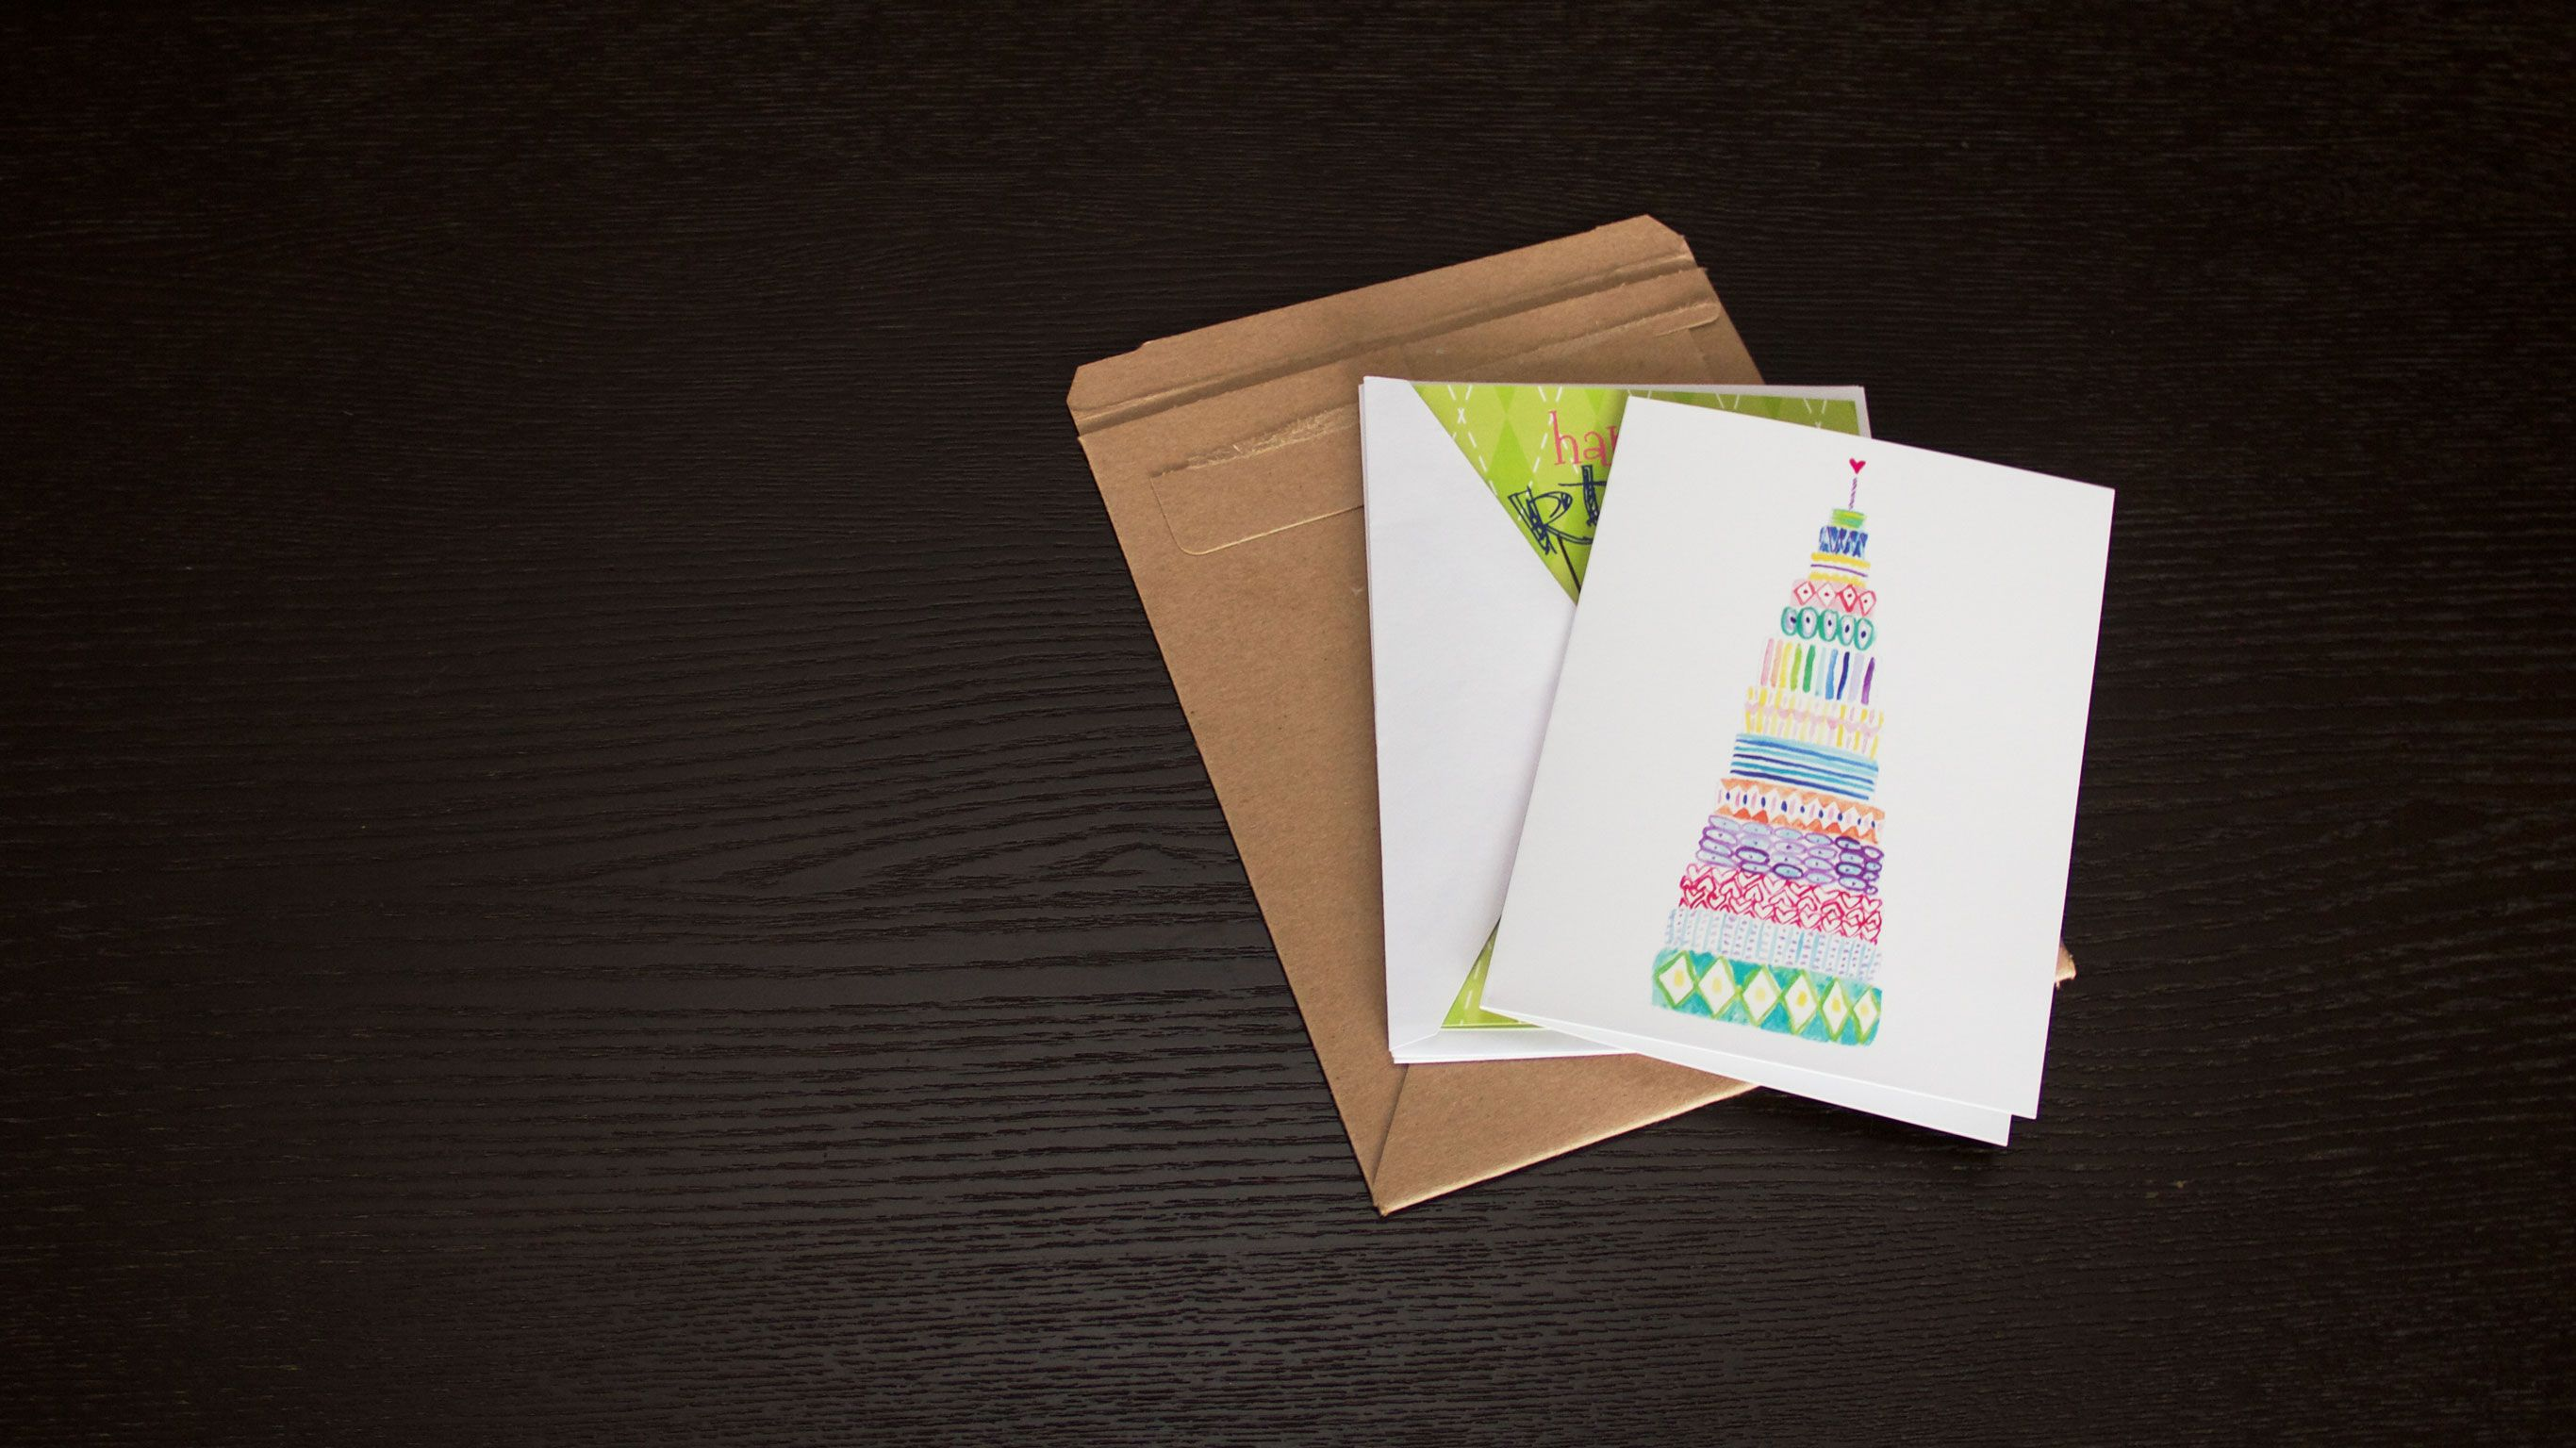 Birthday Cards Delivered ~ Two birthday cards and a package business idea